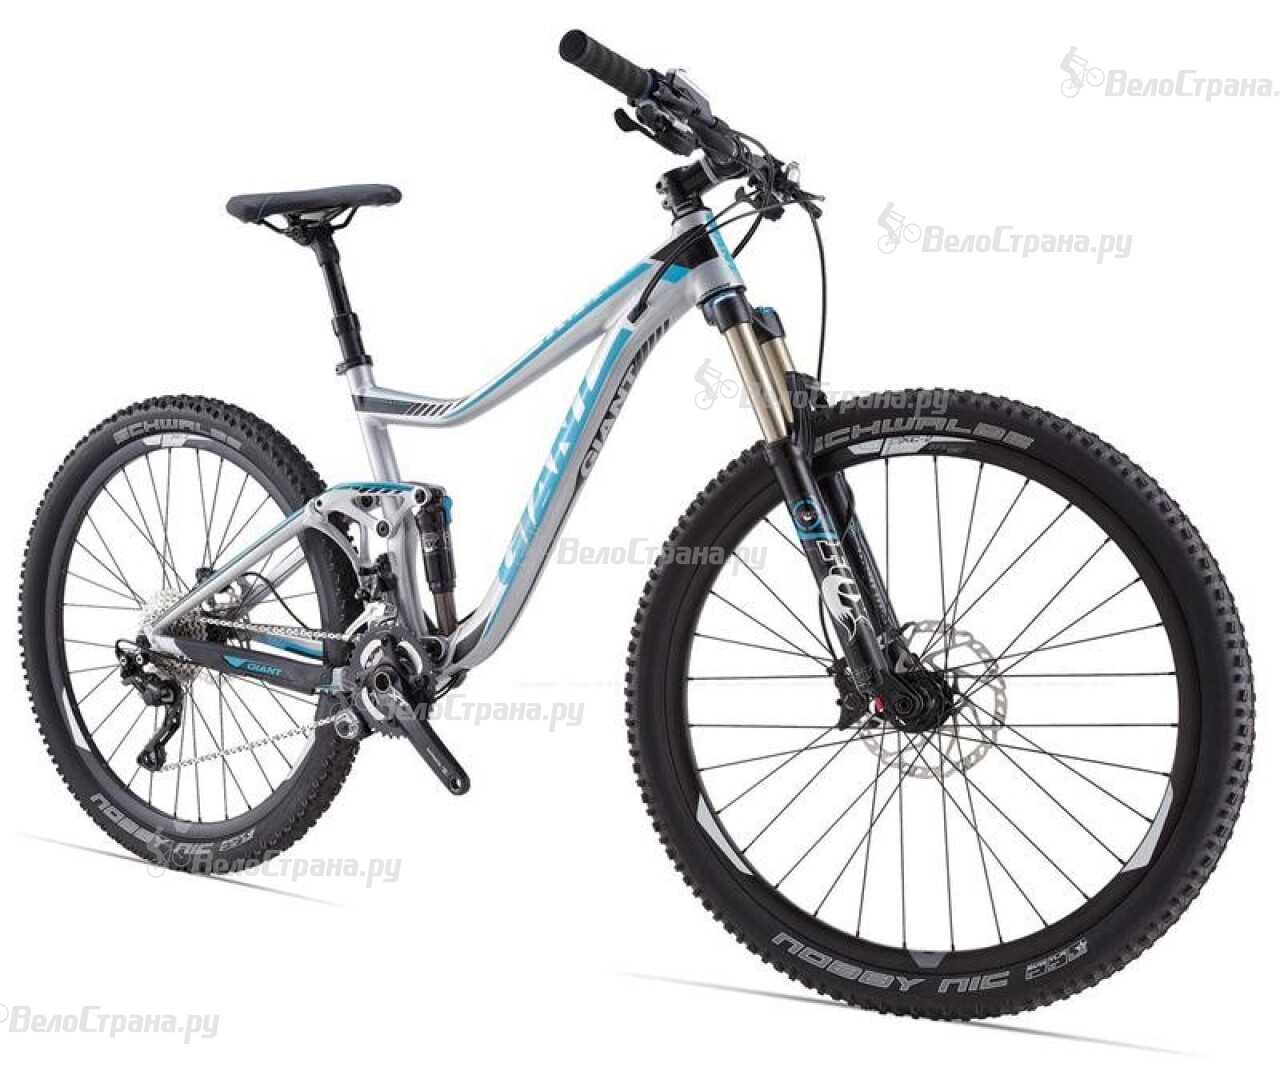 Giant Trance 27.5 1 (2014) giant trance x 29er 1 2014 silver